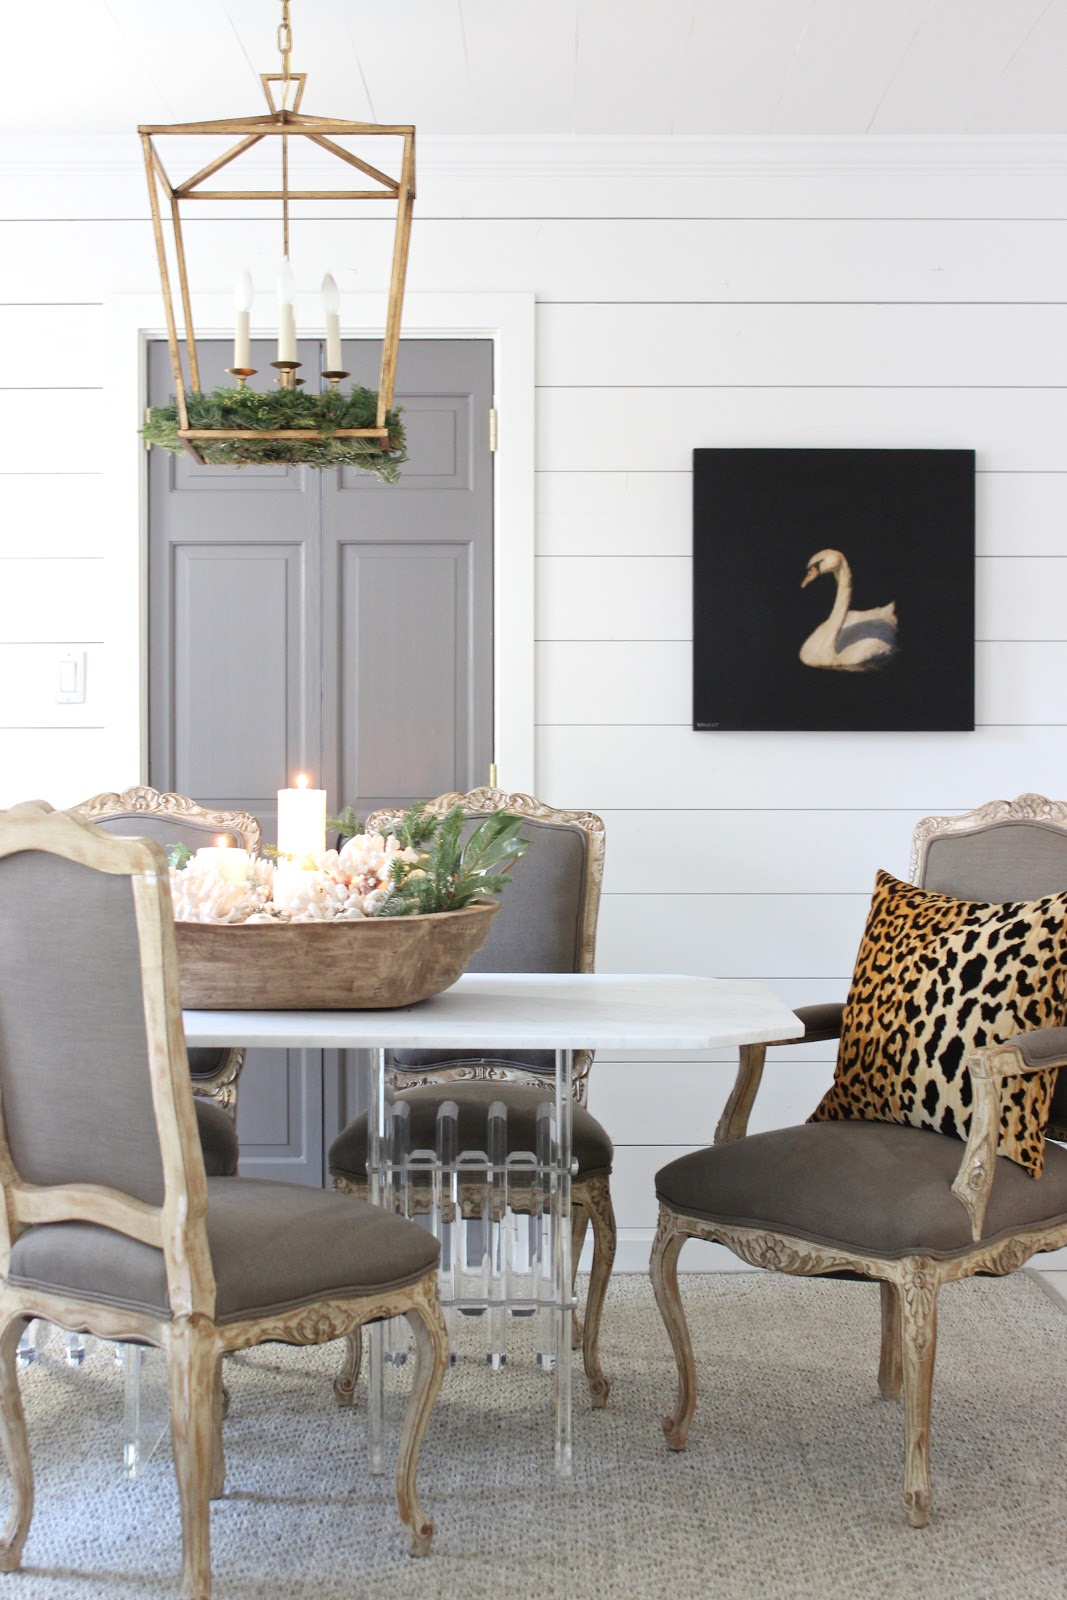 Shiplap walls, neutrals, and coastal holiday decor in a sophisticated dining room by Sherry Hart.